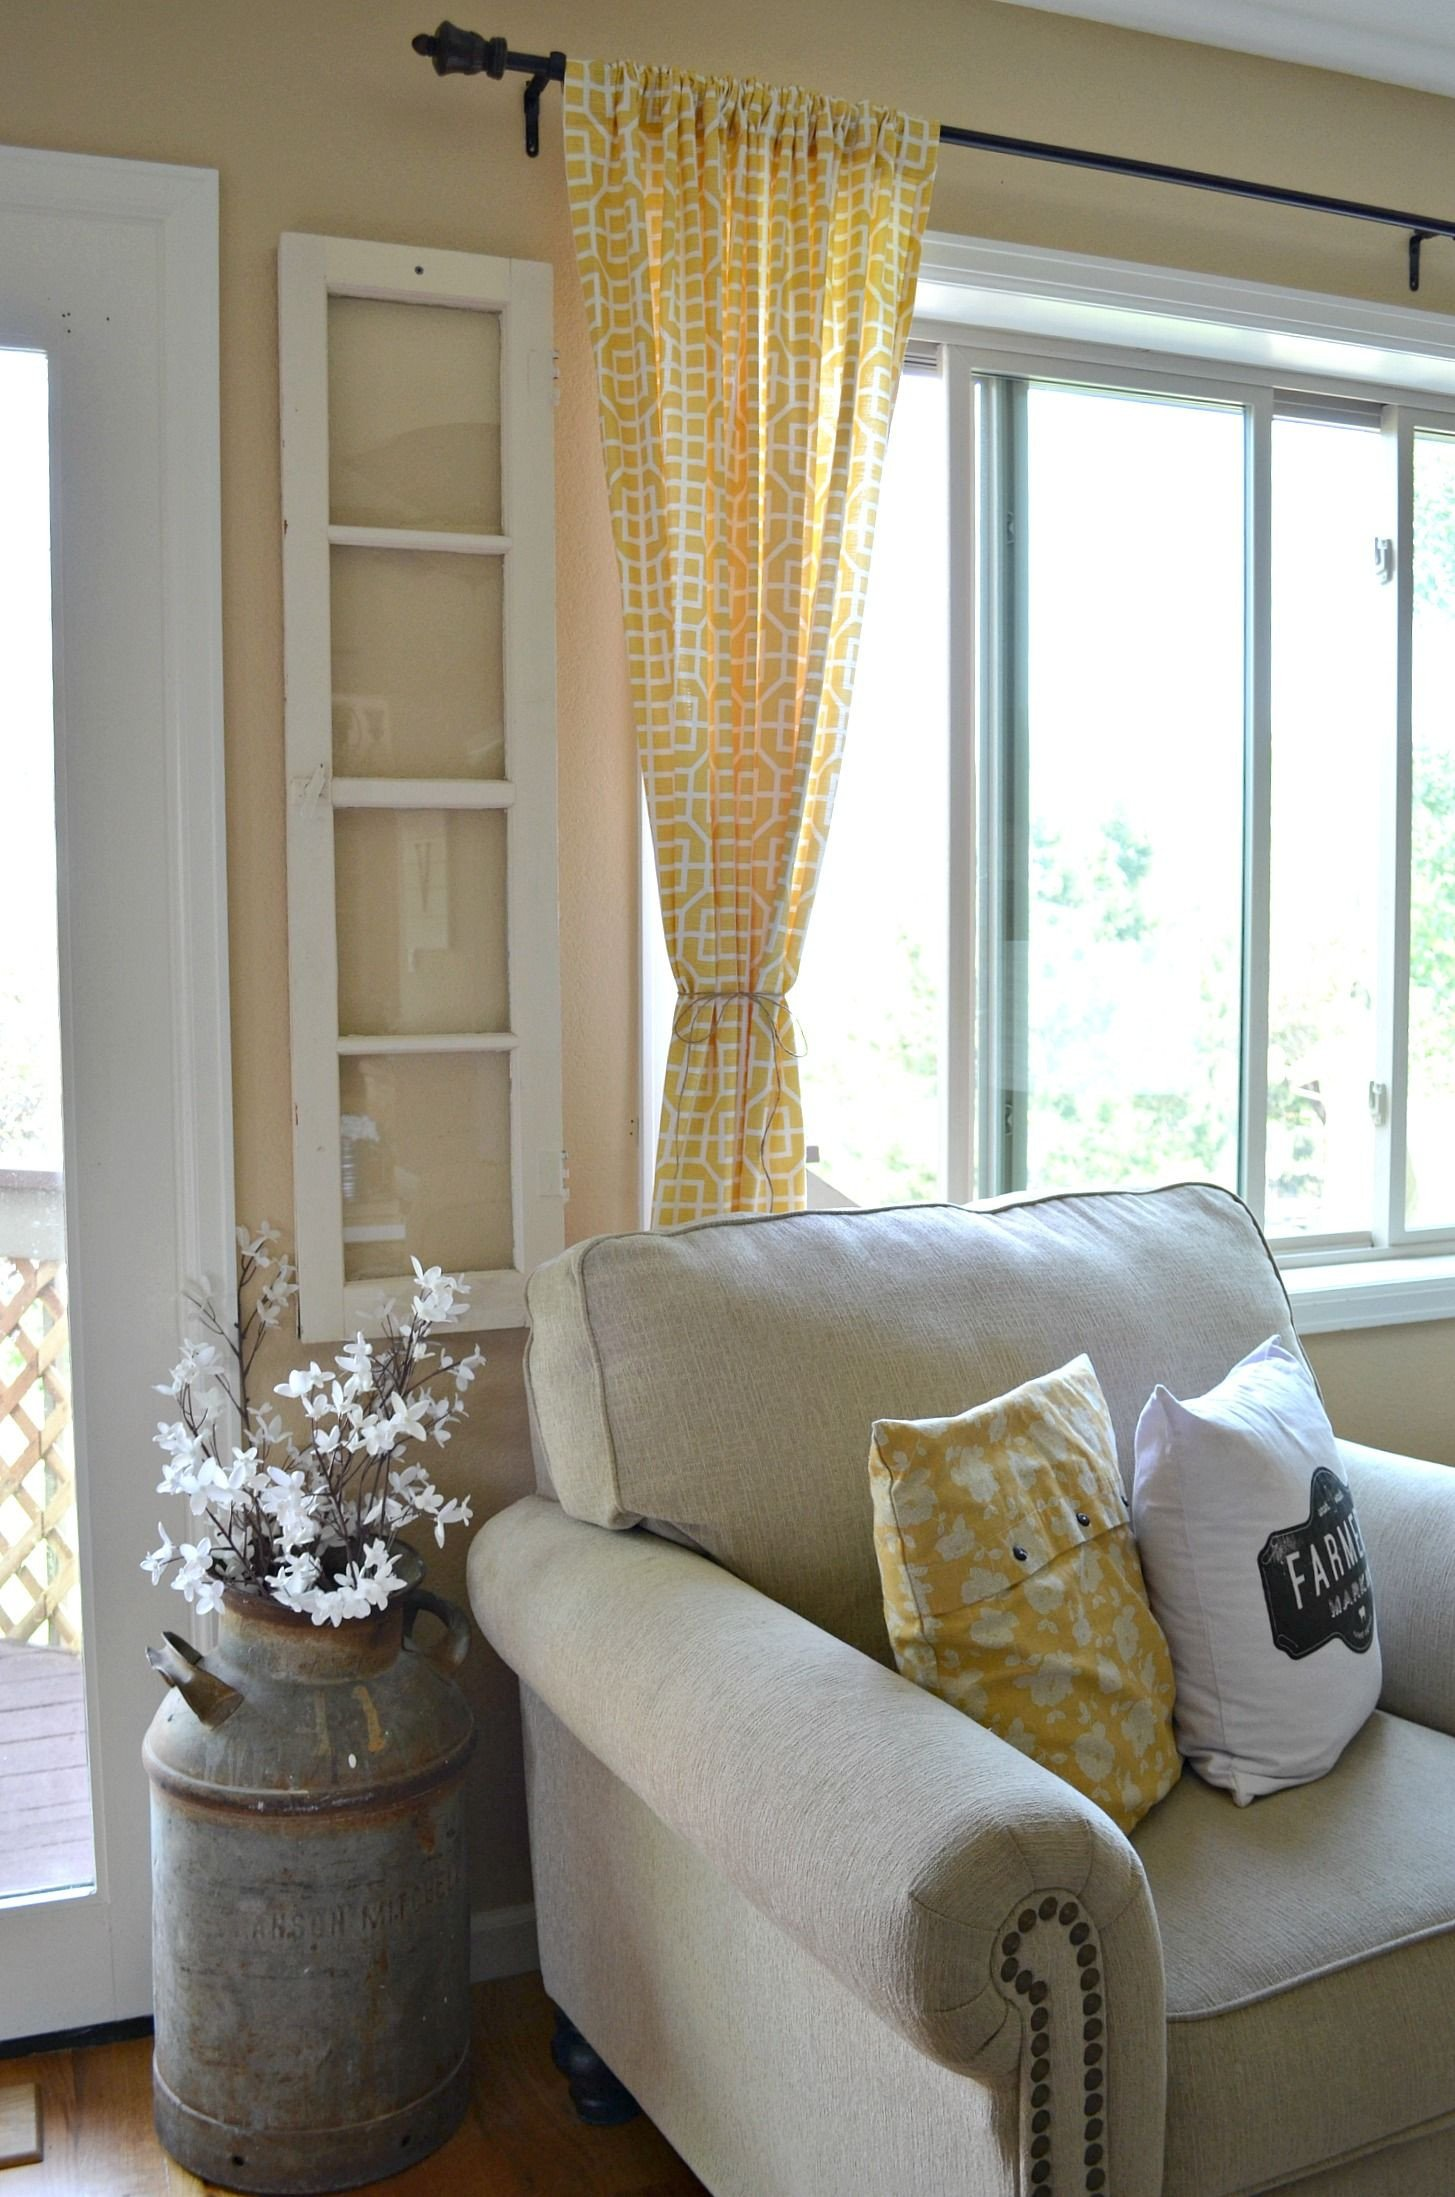 Bedroom Curtain Ideas Small Windows Luxury 4 Ways to Decorate with Old Windows